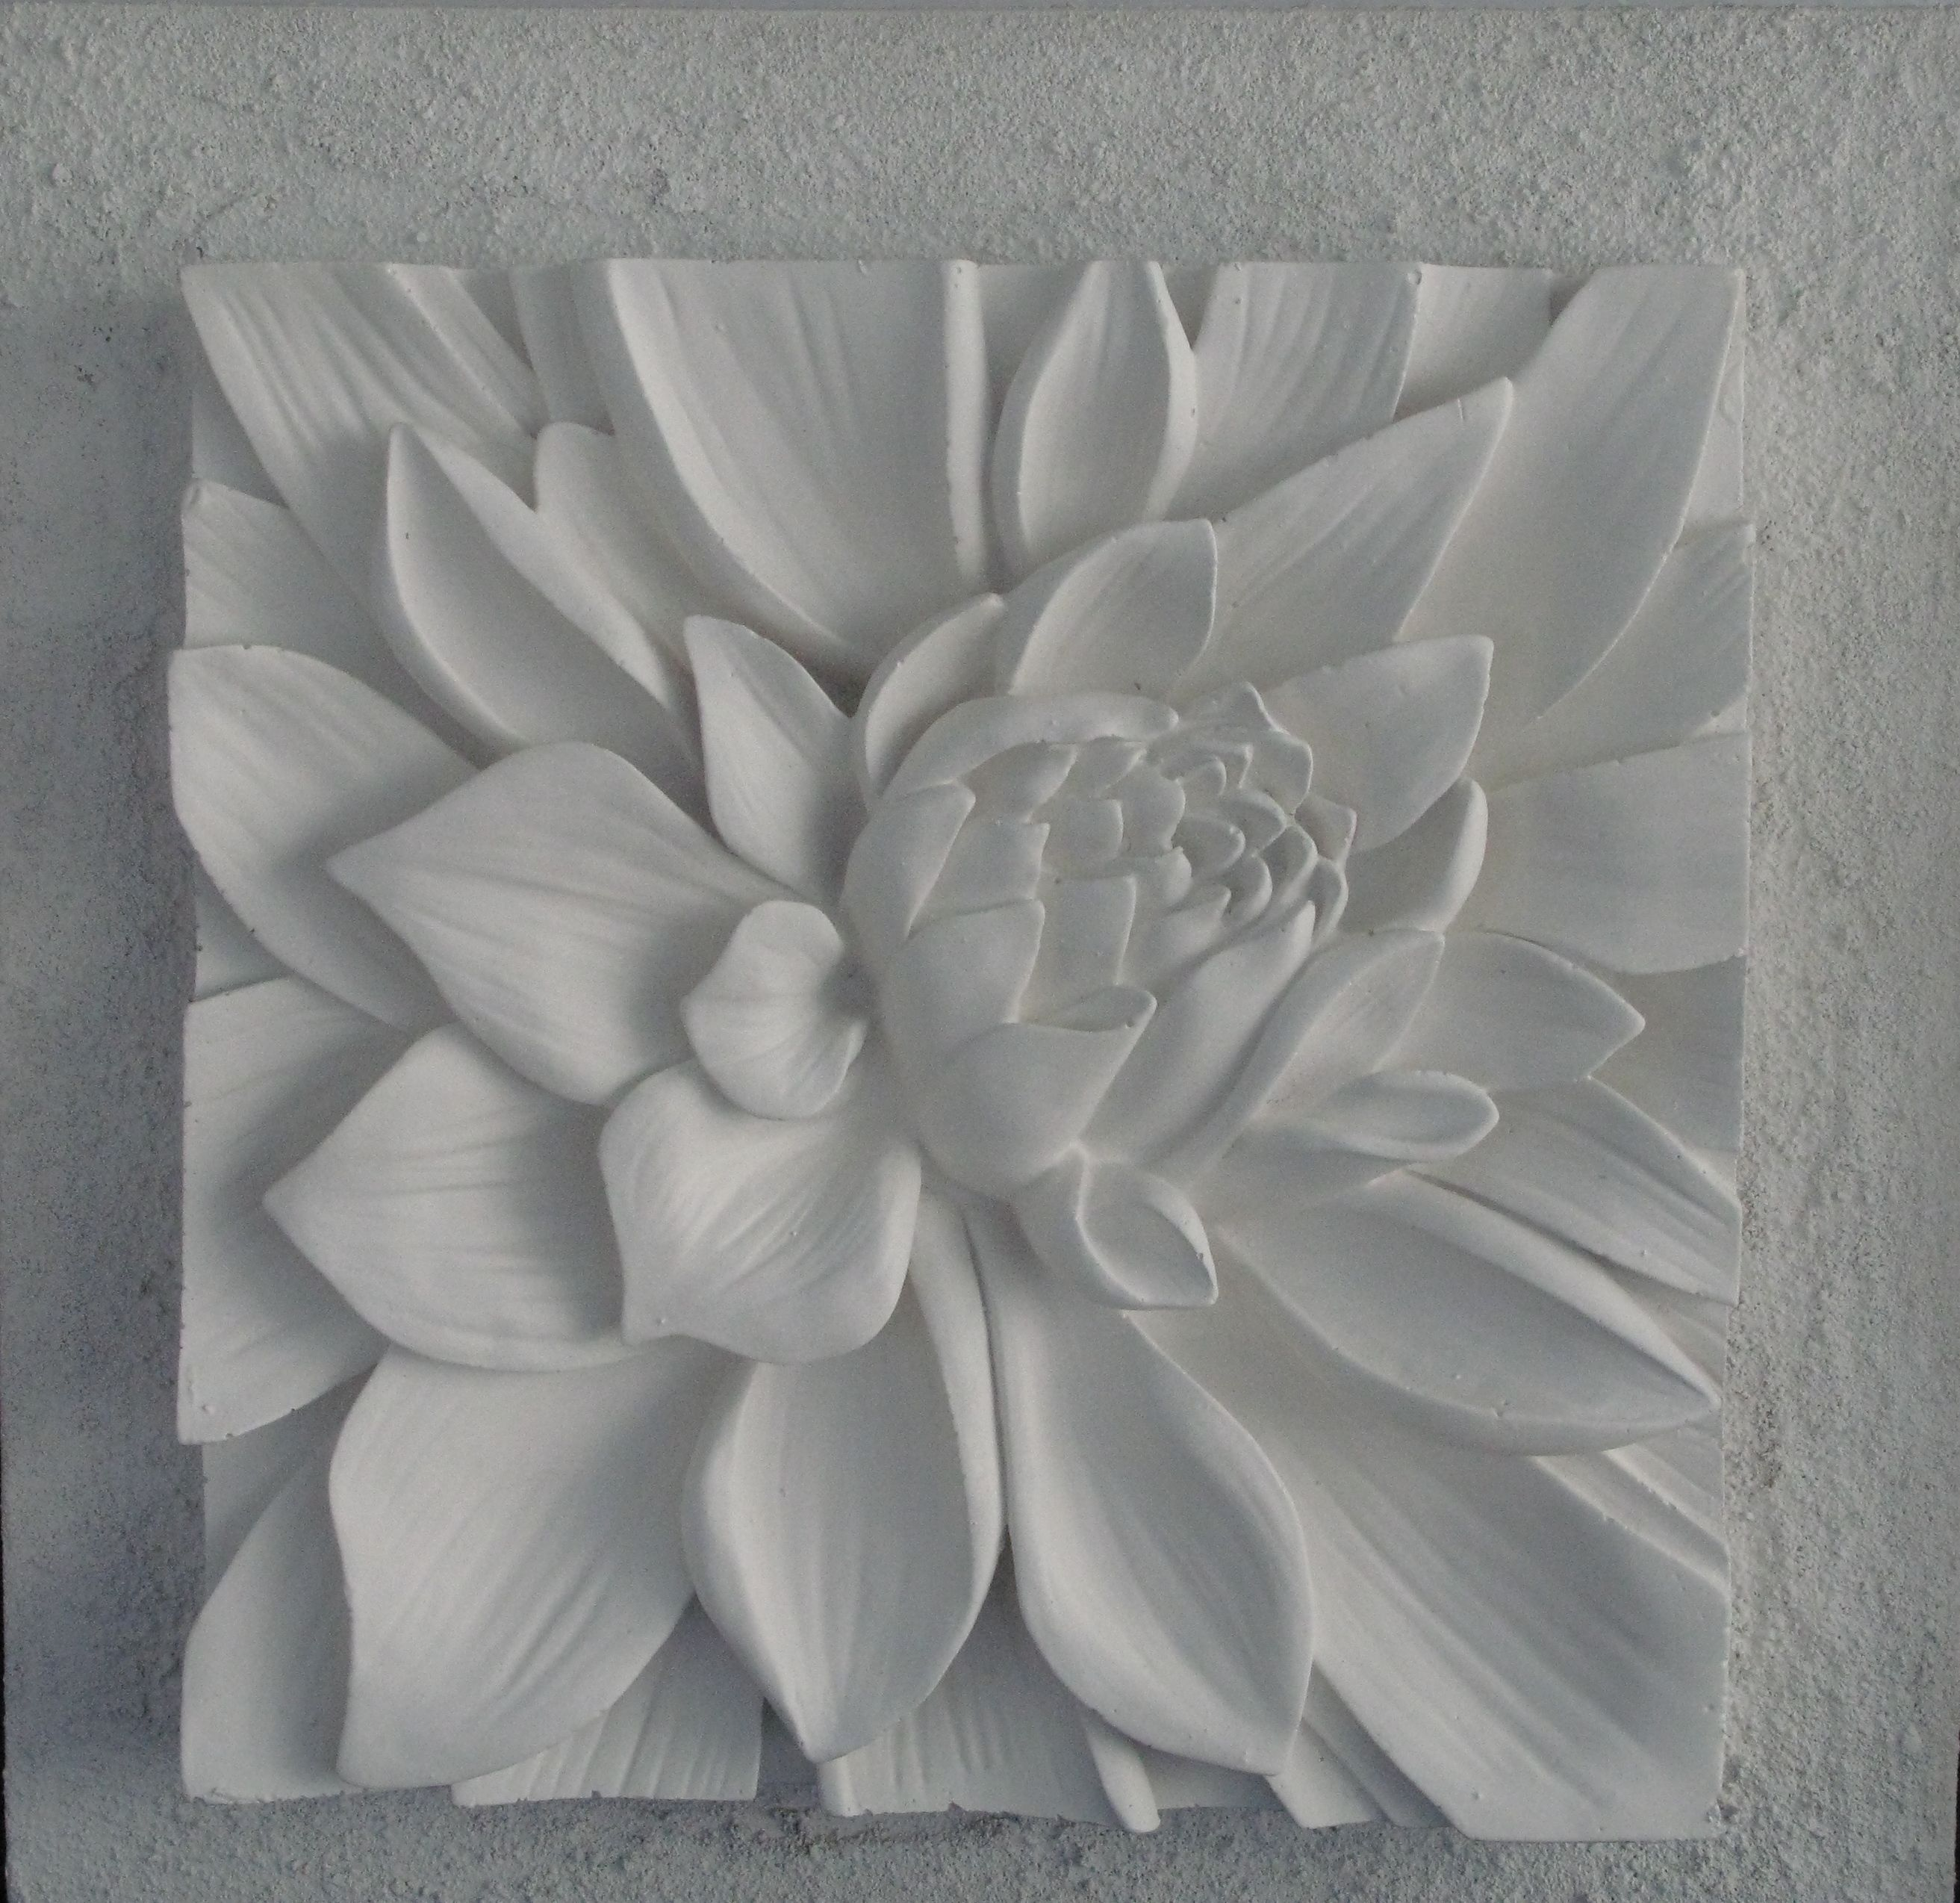 Plaster Wall Art 3d sculptural art with textured background. lotus flower white